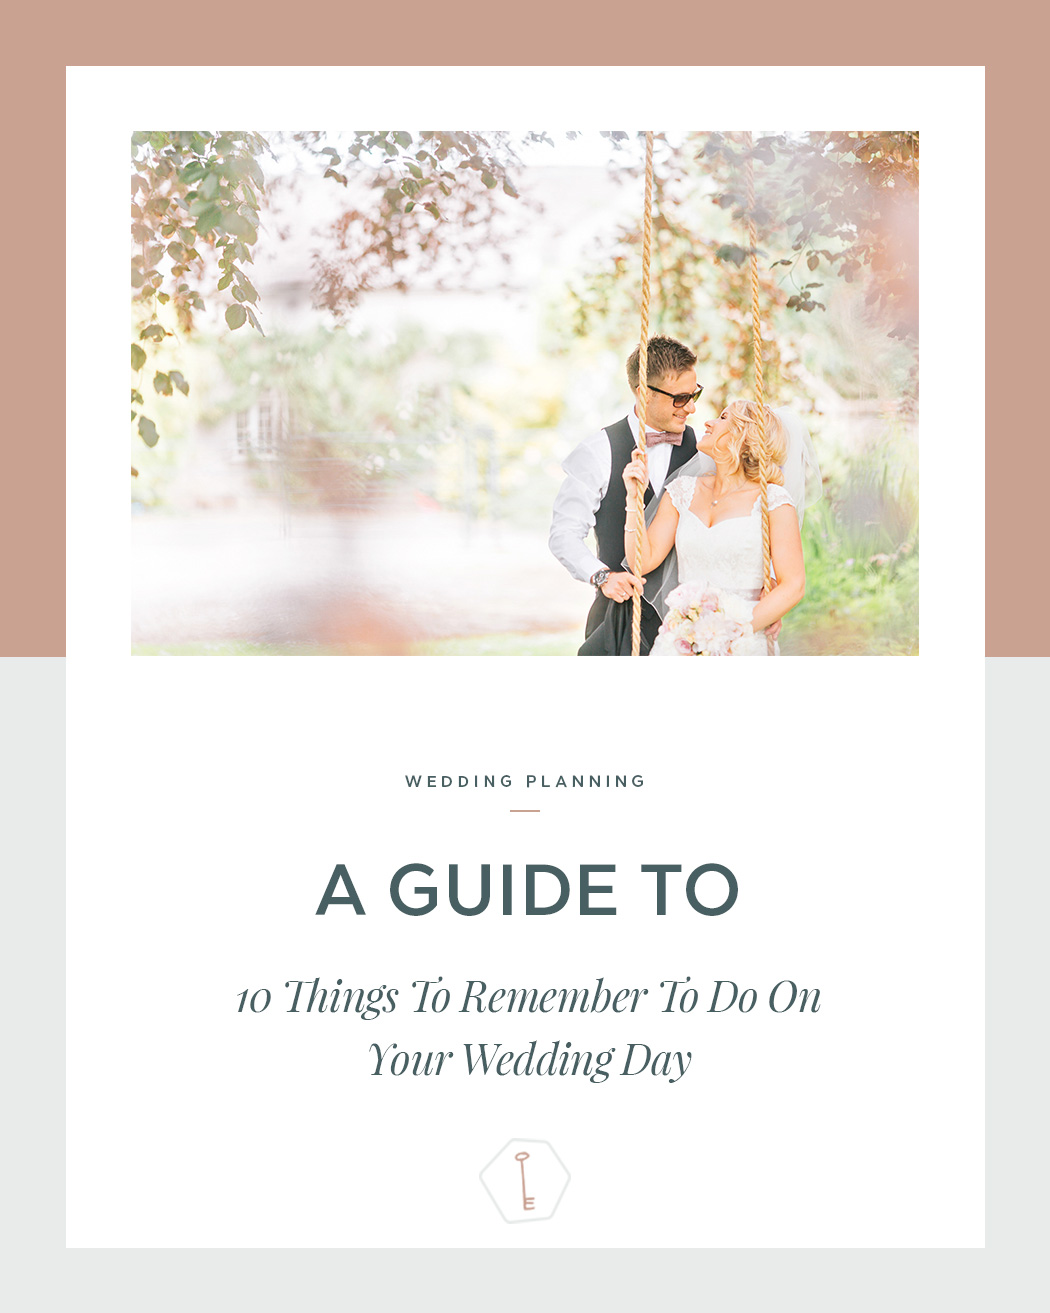 10-things-to-remember-to-do-on-your-wedding-day